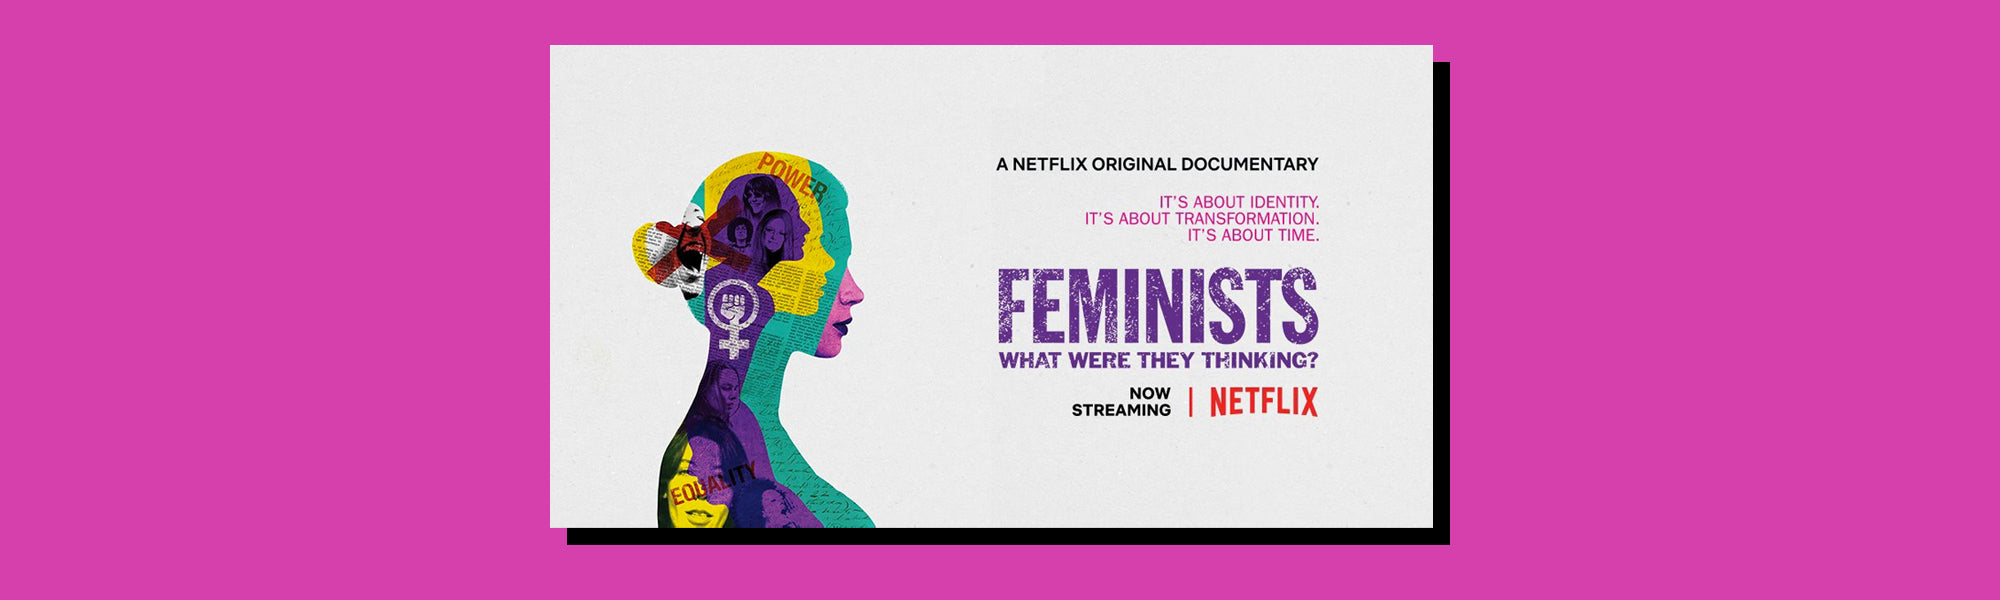 west carolina must watch feminist movies and shows on netflix blog post image 4